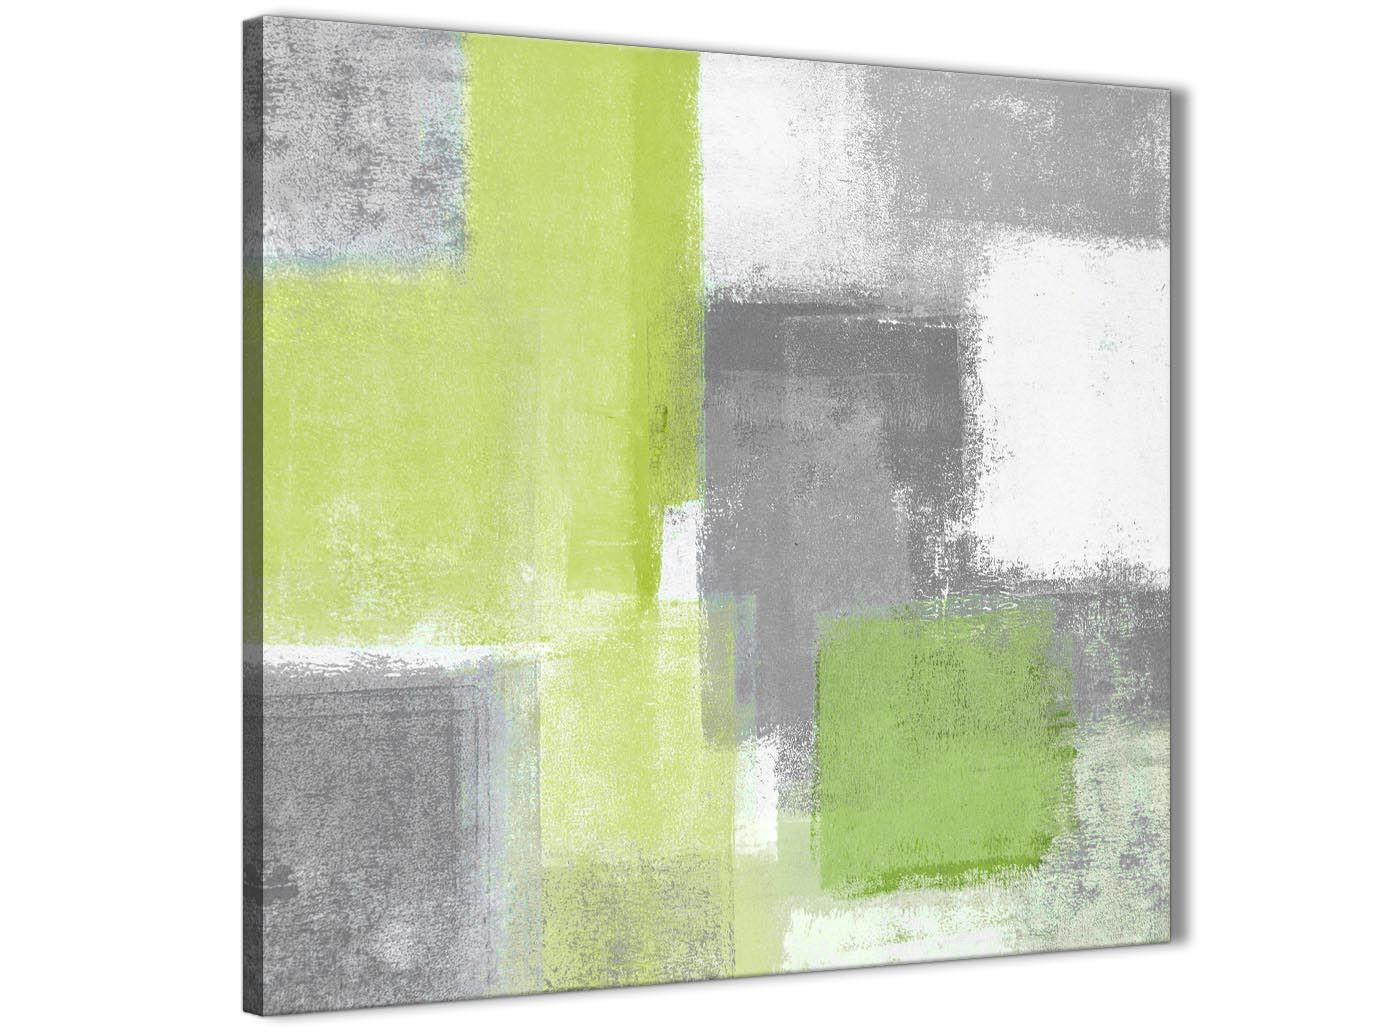 Details about lime green grey bathroom canvas wall art accessories abstract 1s369s 49cm